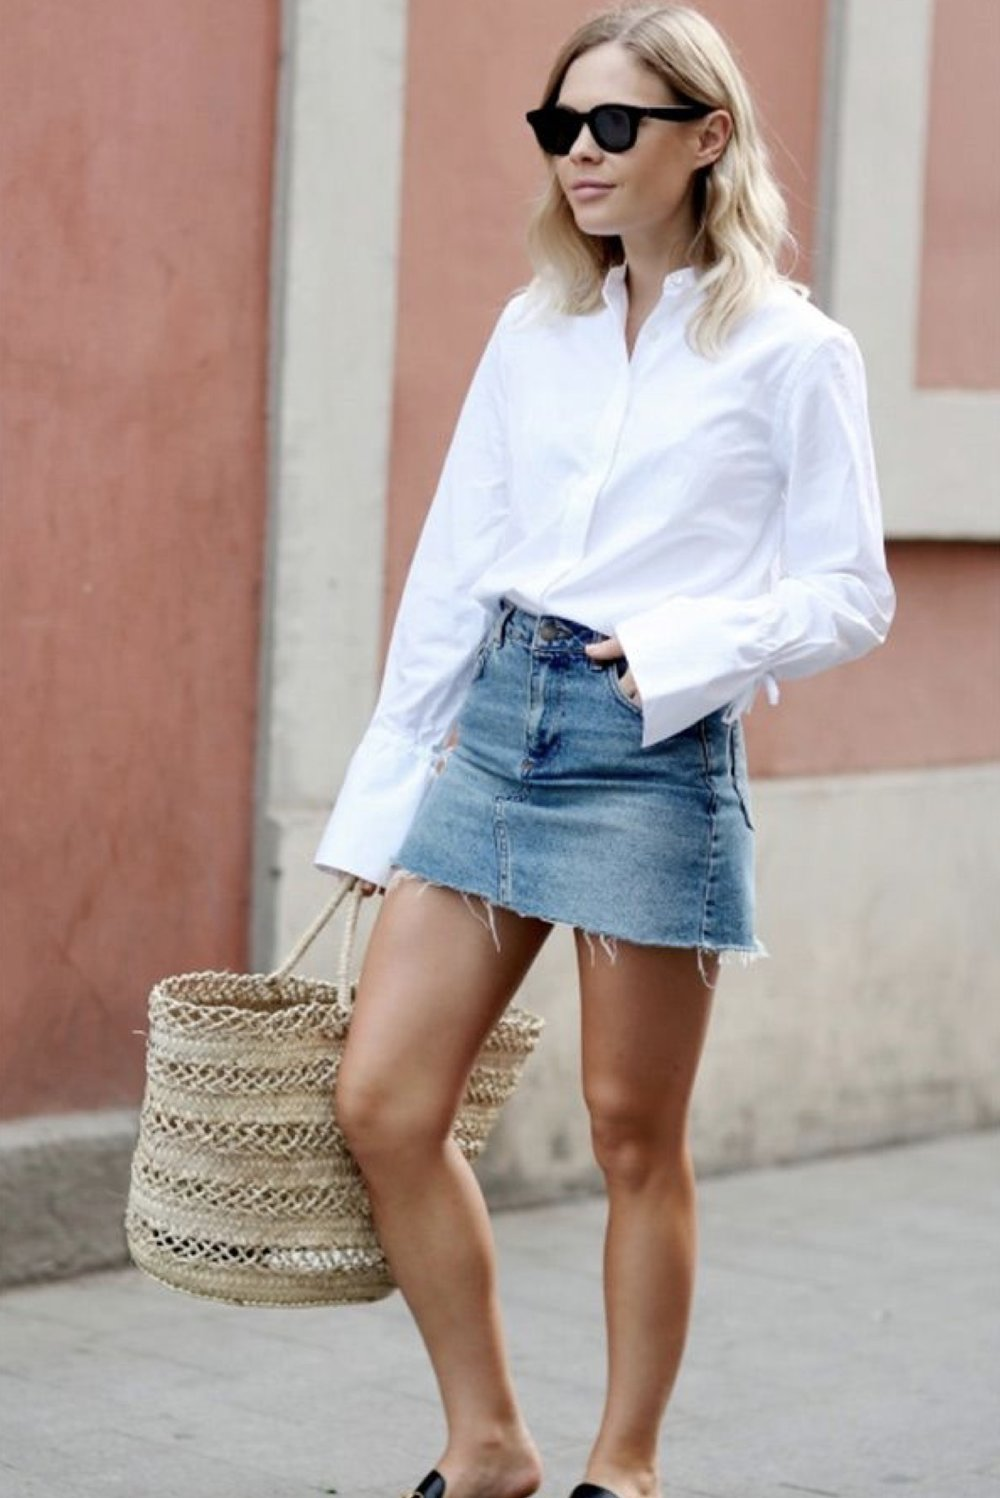 d1d823d9d How to Look Amazing in a Denim Mini Skirt — HighLowLuxxe